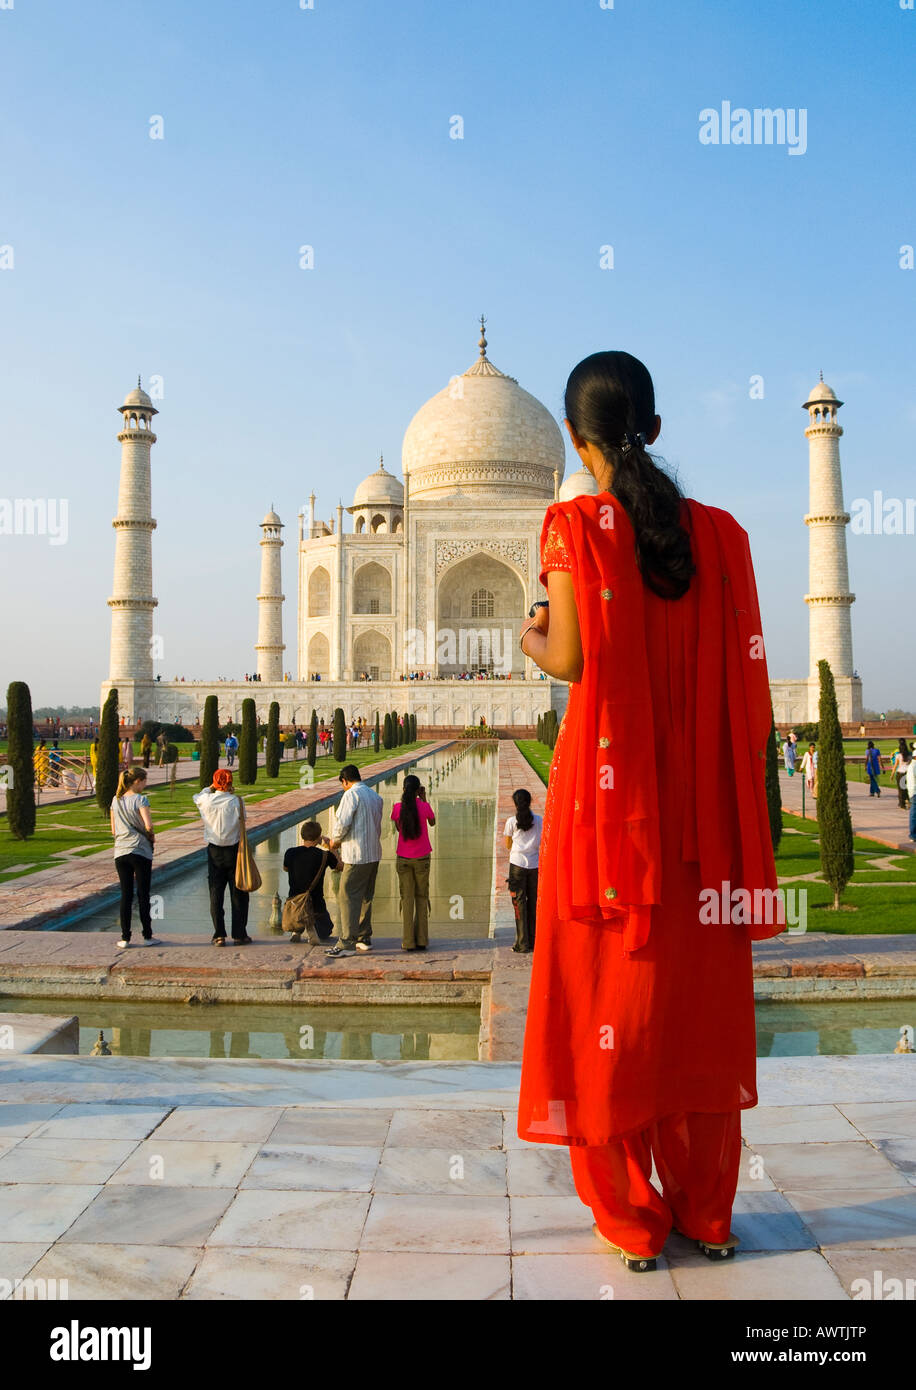 A woman in a red sari in front of the Taj Mahal in Agra India - Stock Image